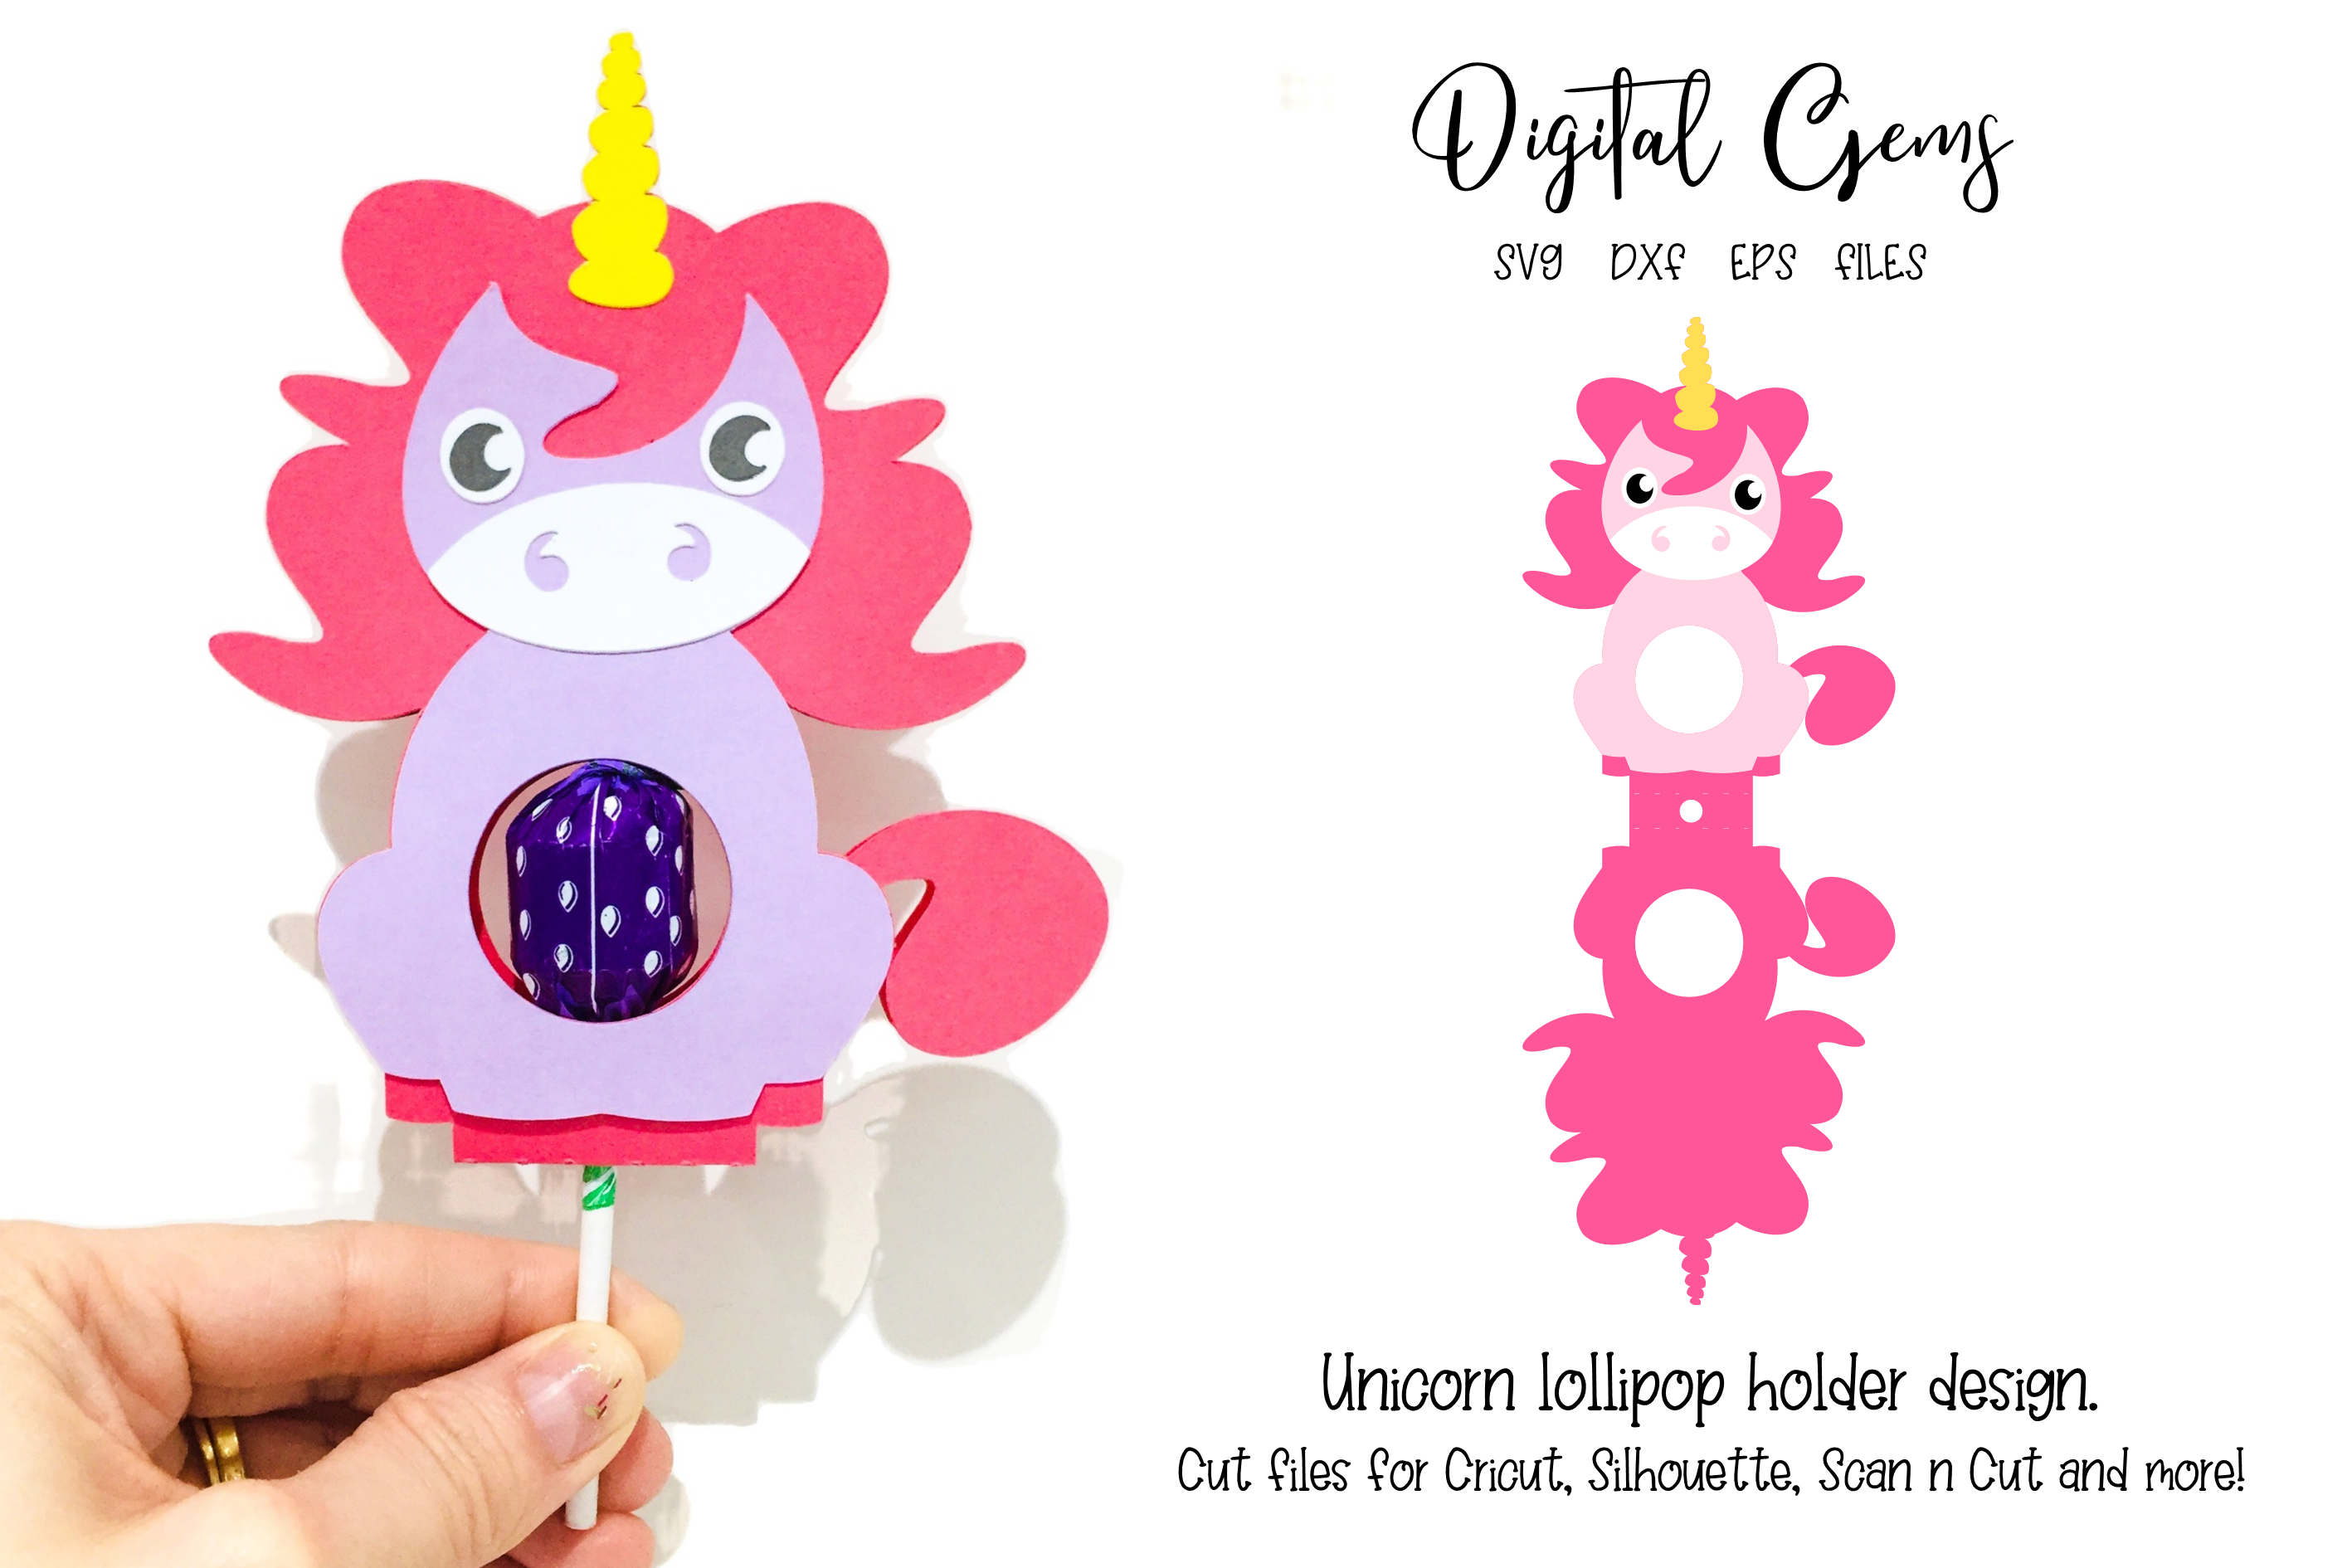 Unicorn Lollipop Holder Design Graphic By Digital Gems